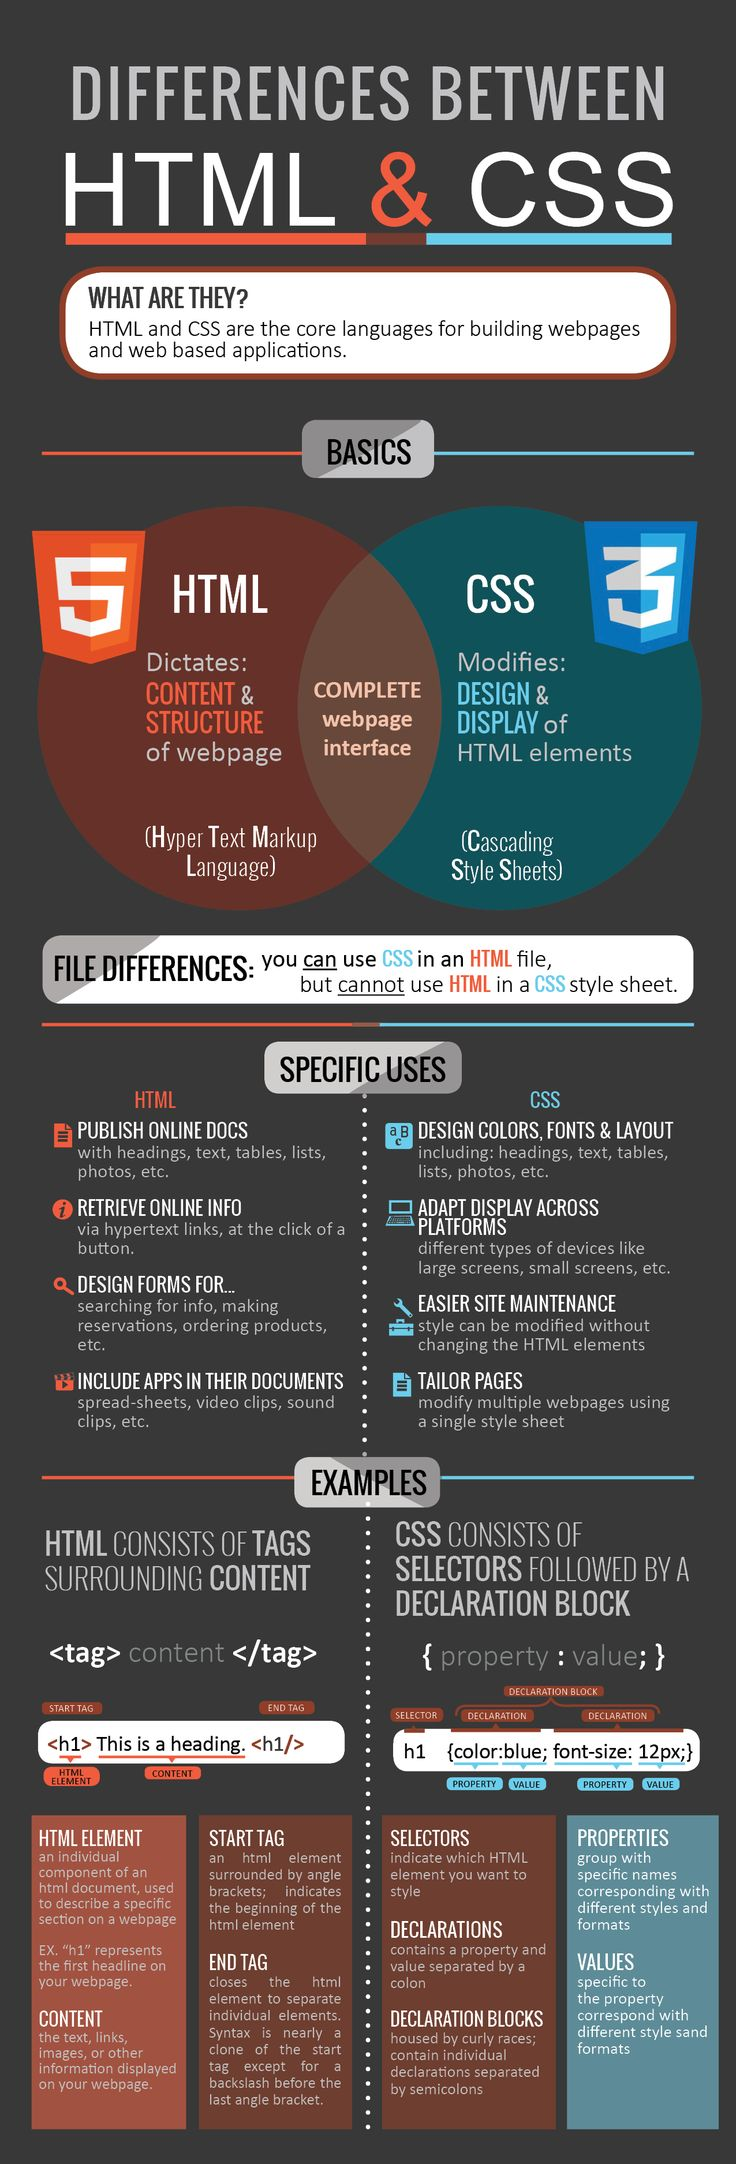 Key differences between HTML & CSS  Have a big network of executives and HR managers? Introduce us to them and we will pay for your travel. Email me at carlos@recruitingforgood.com